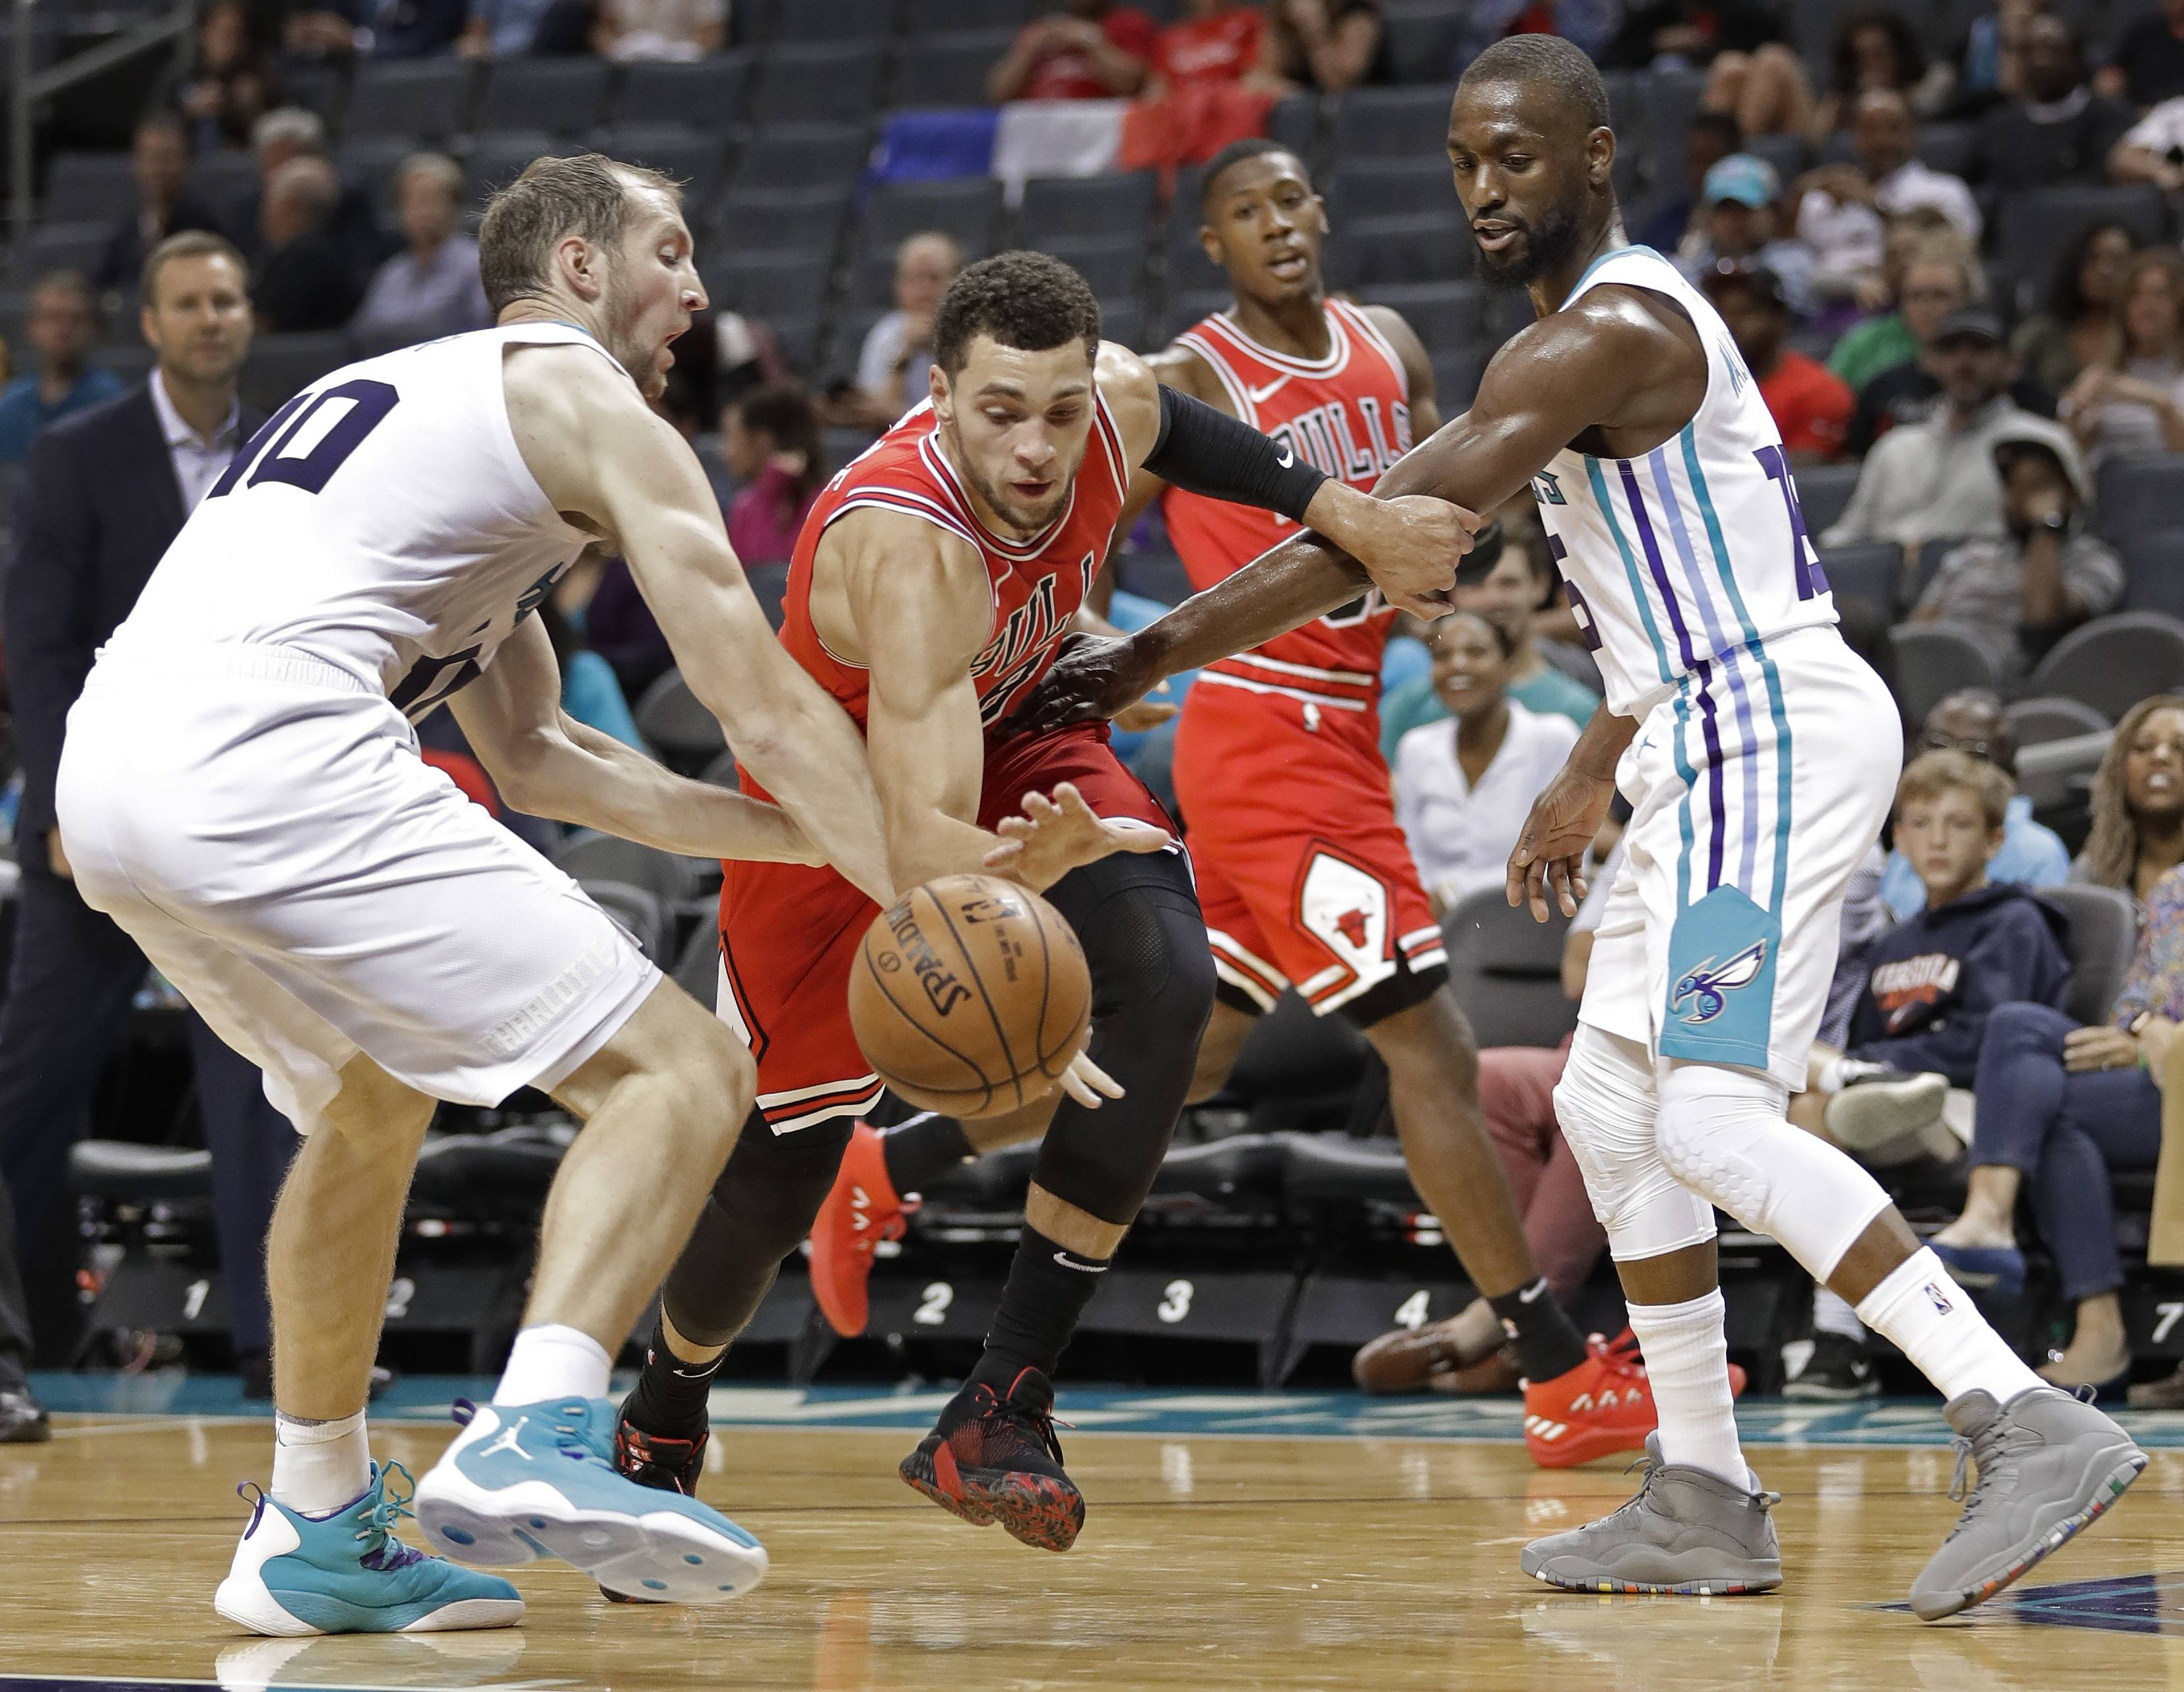 Defense struggles, but offense improves in Chicago Bulls' preseason loss at Charlotte